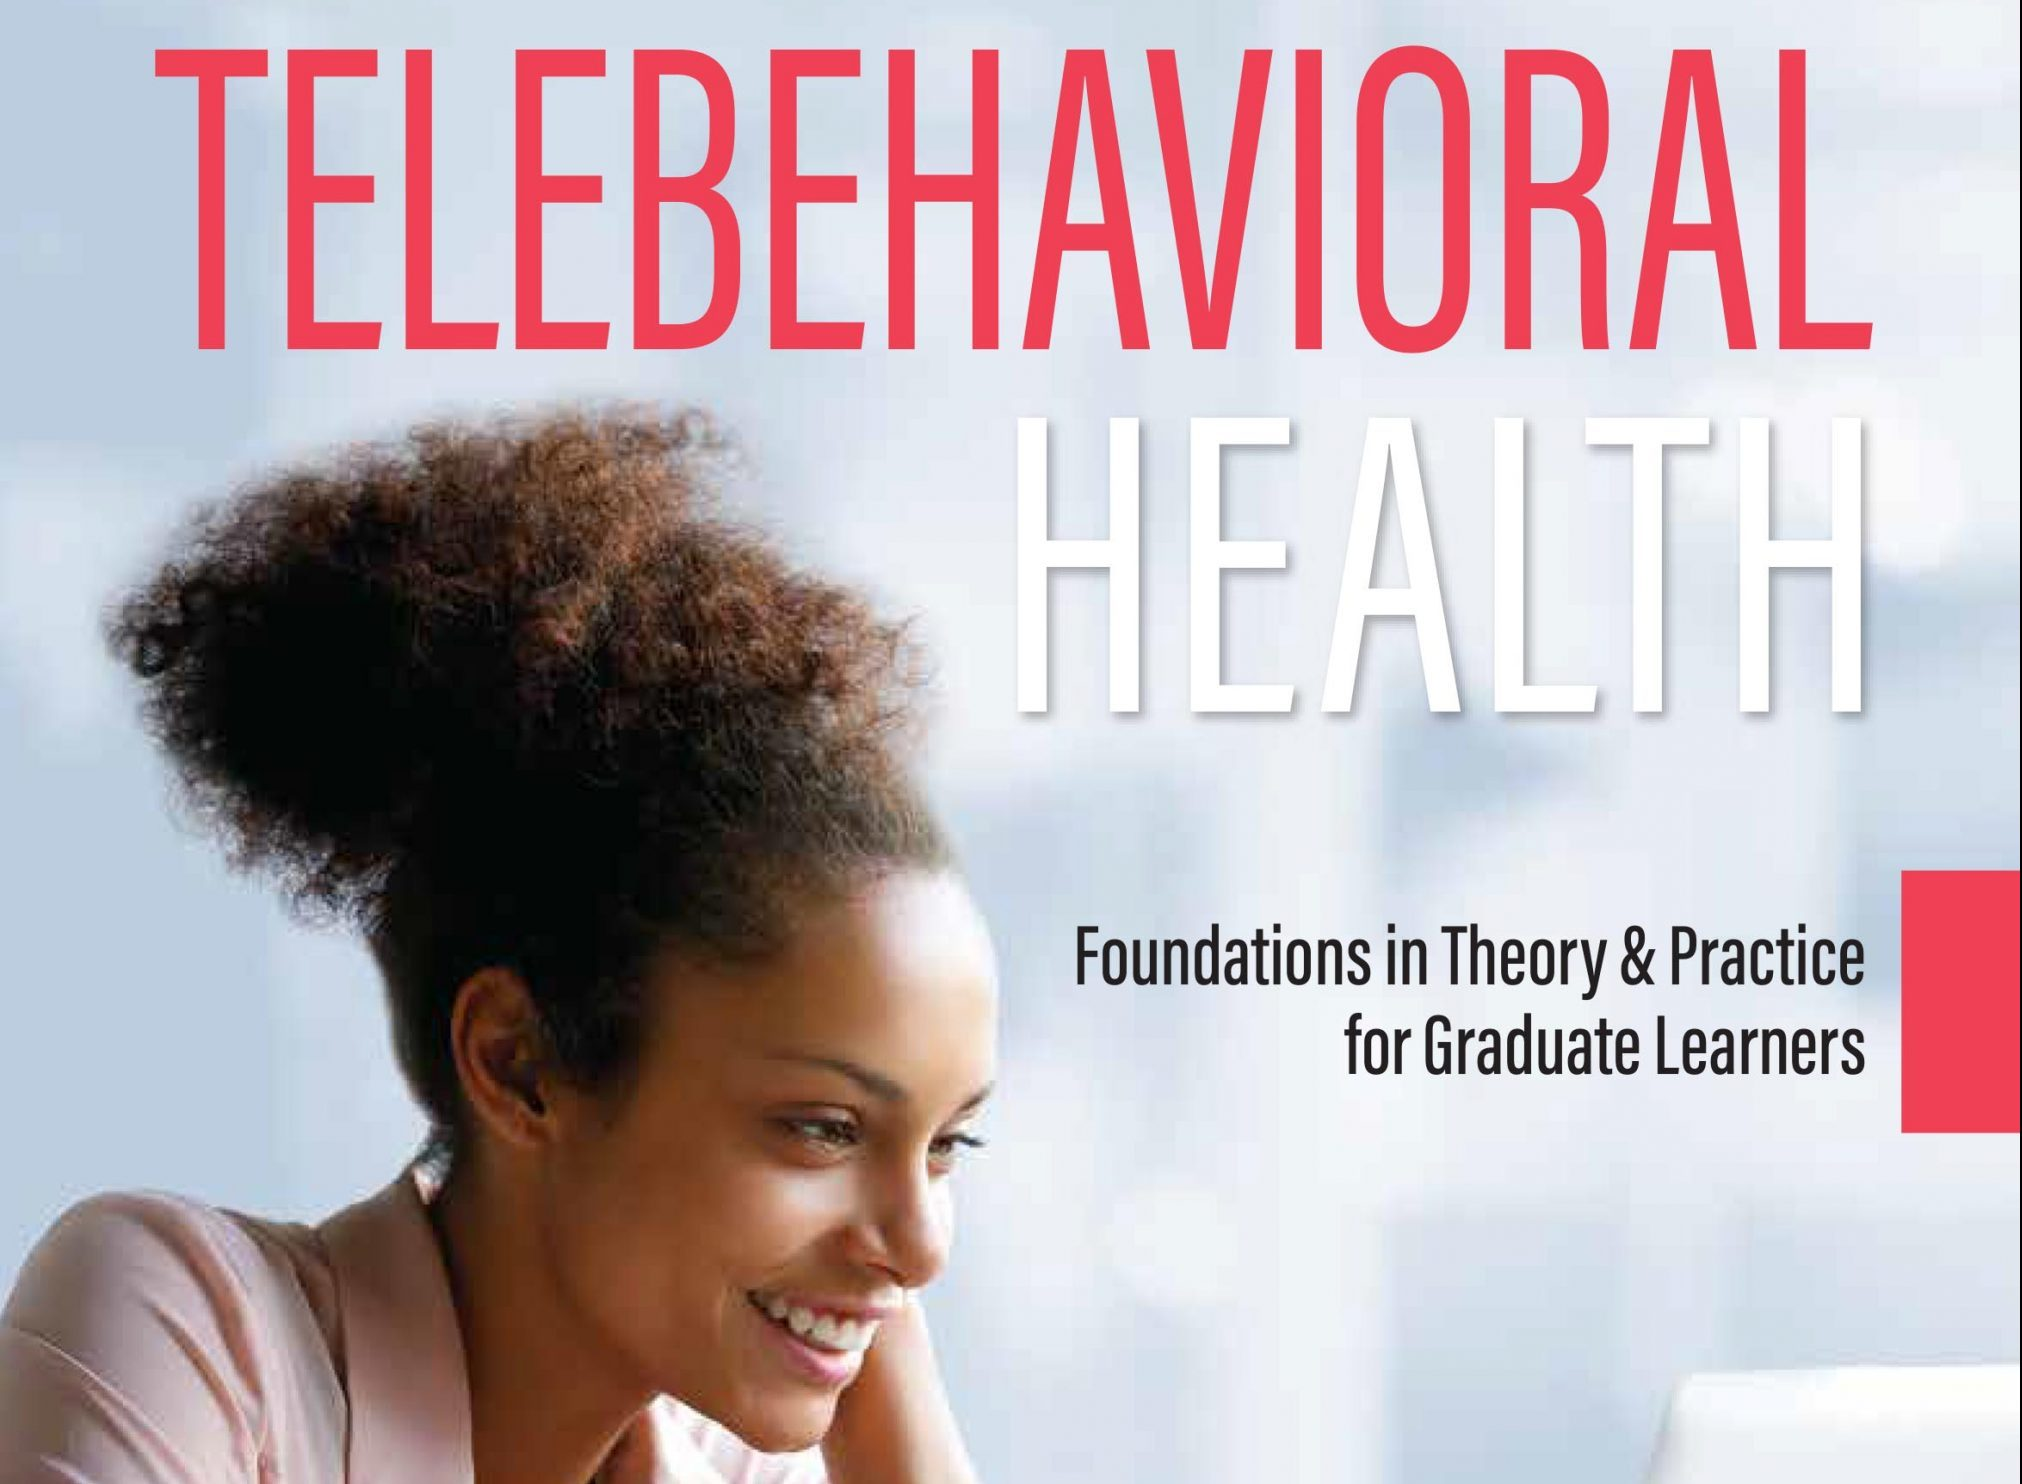 COMING SOON! Telebehavioral Health: Foundations in Theory and Practice for Graduate Learners